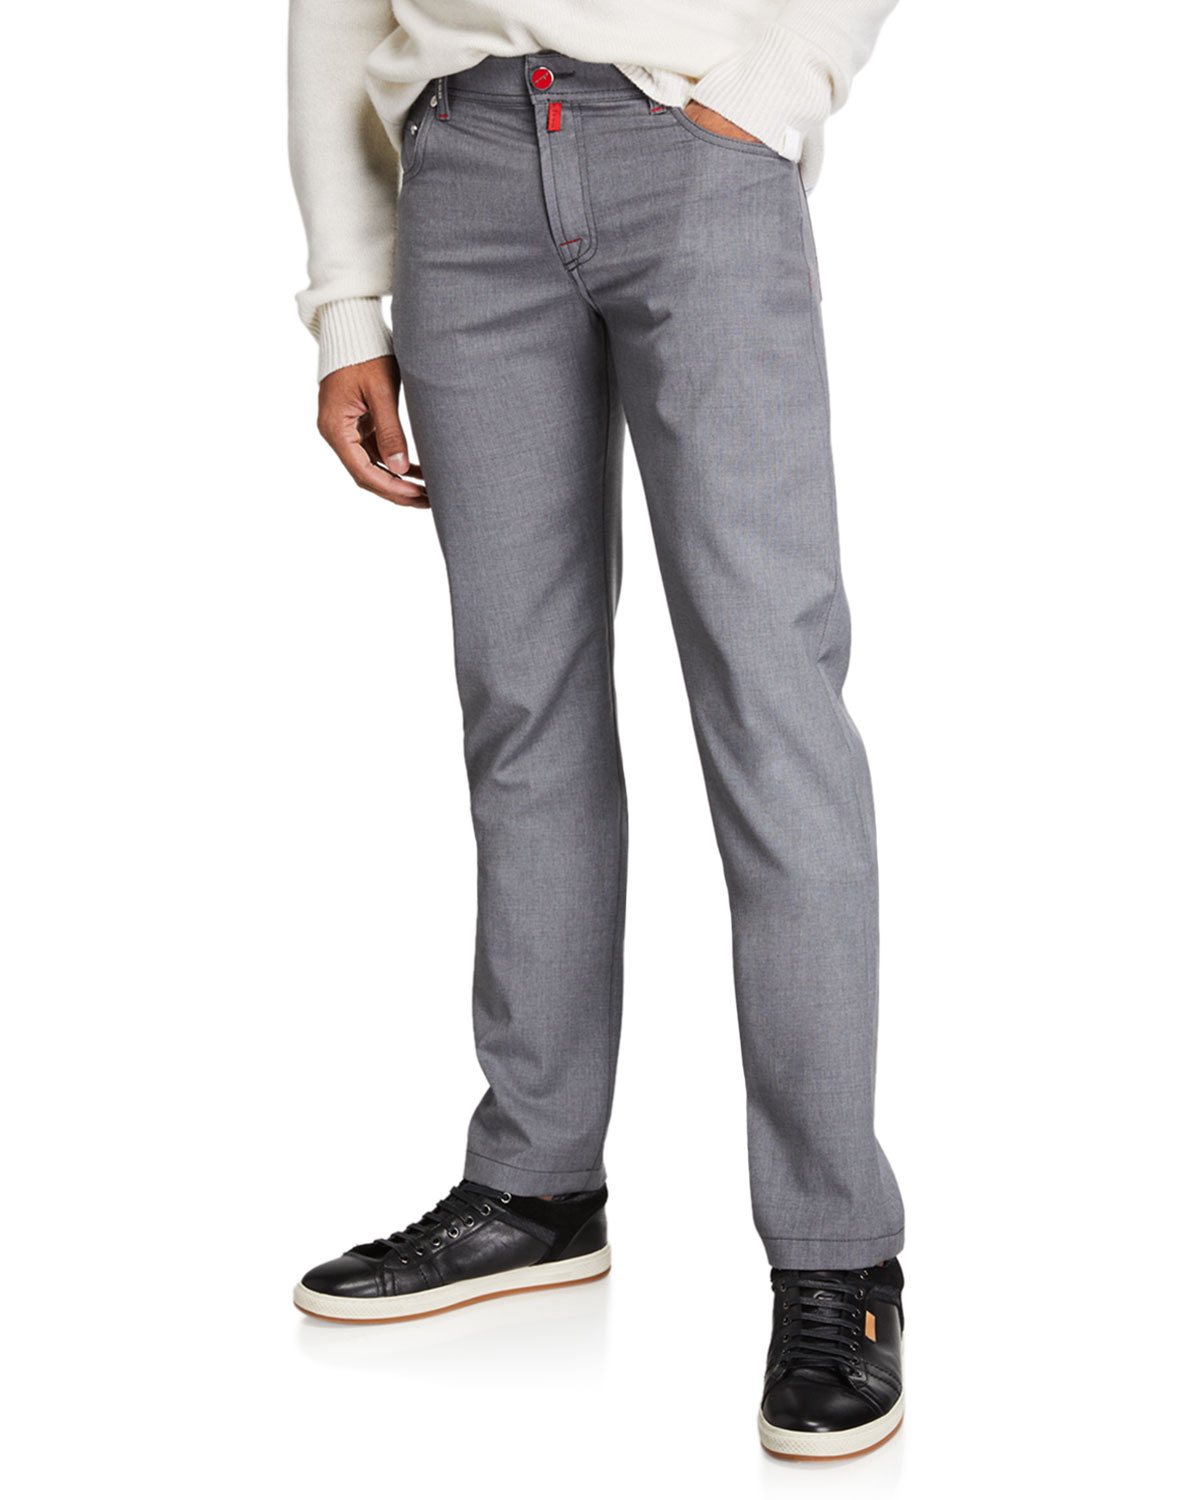 Kiton Men's Natural Stretch Denim Jeans